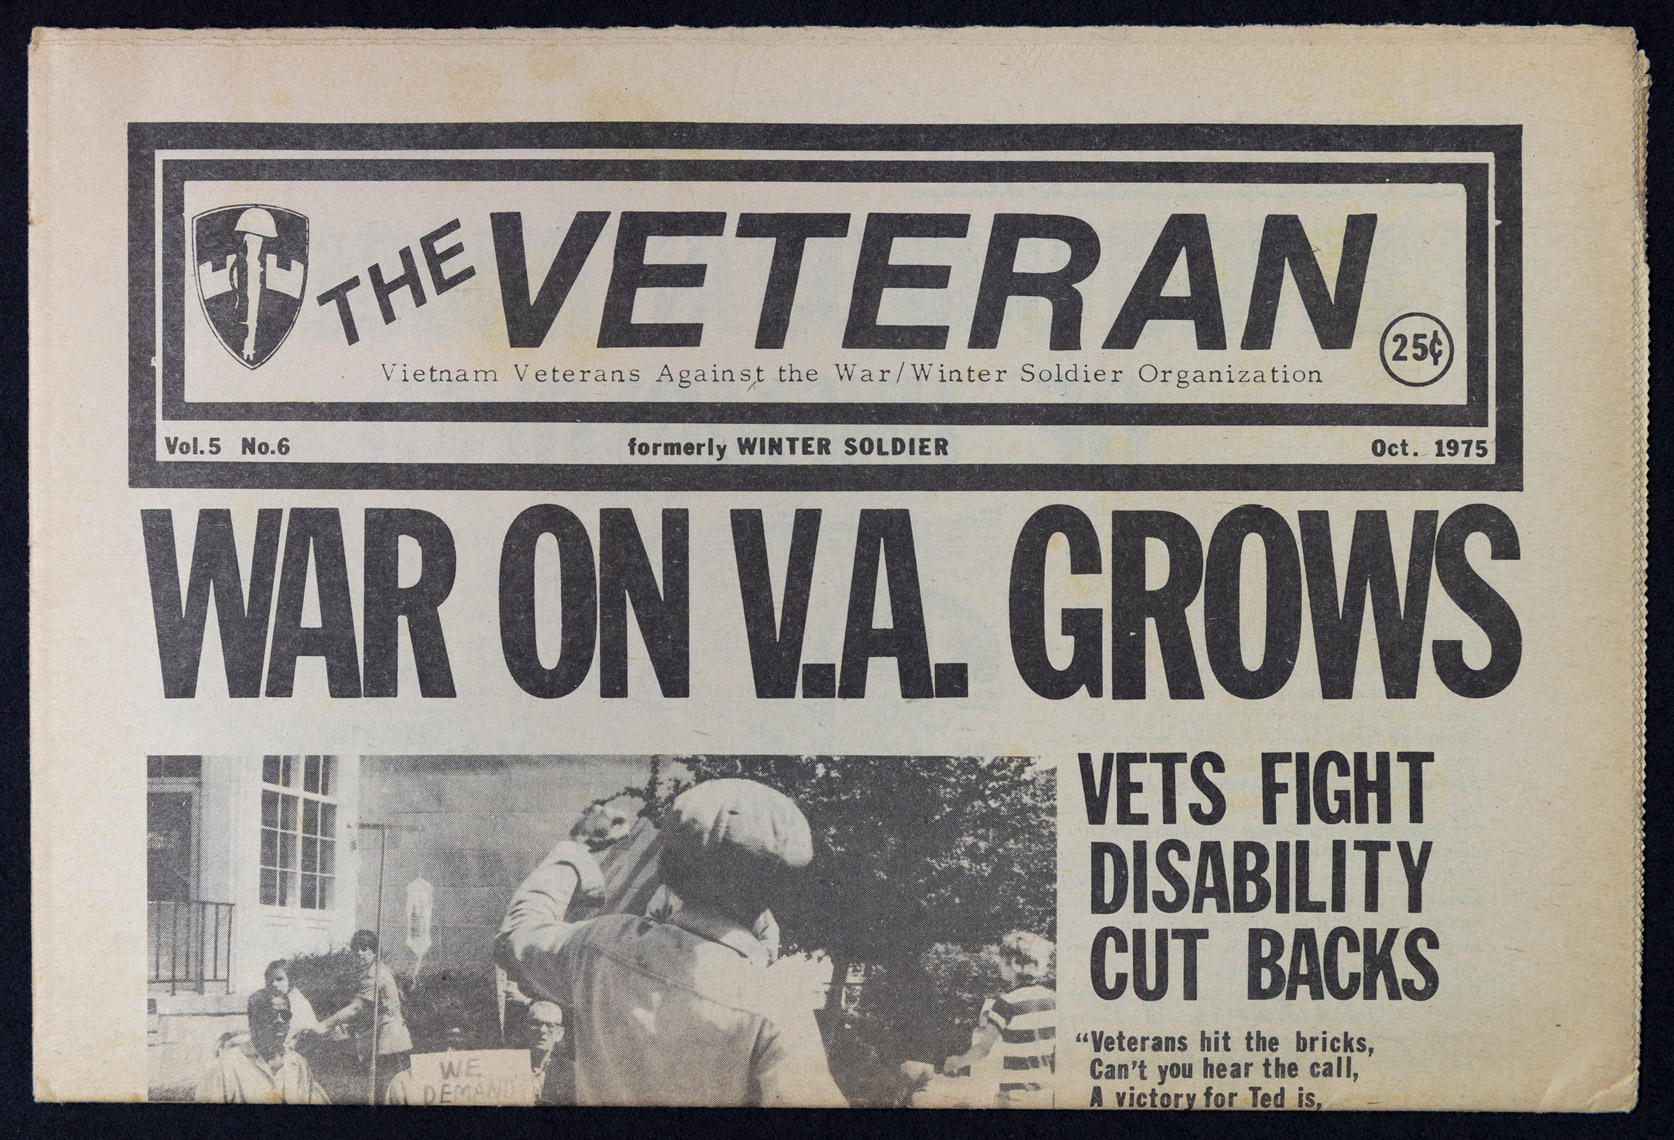 The-Veteran-Vol-5-No-6-Oct-1975